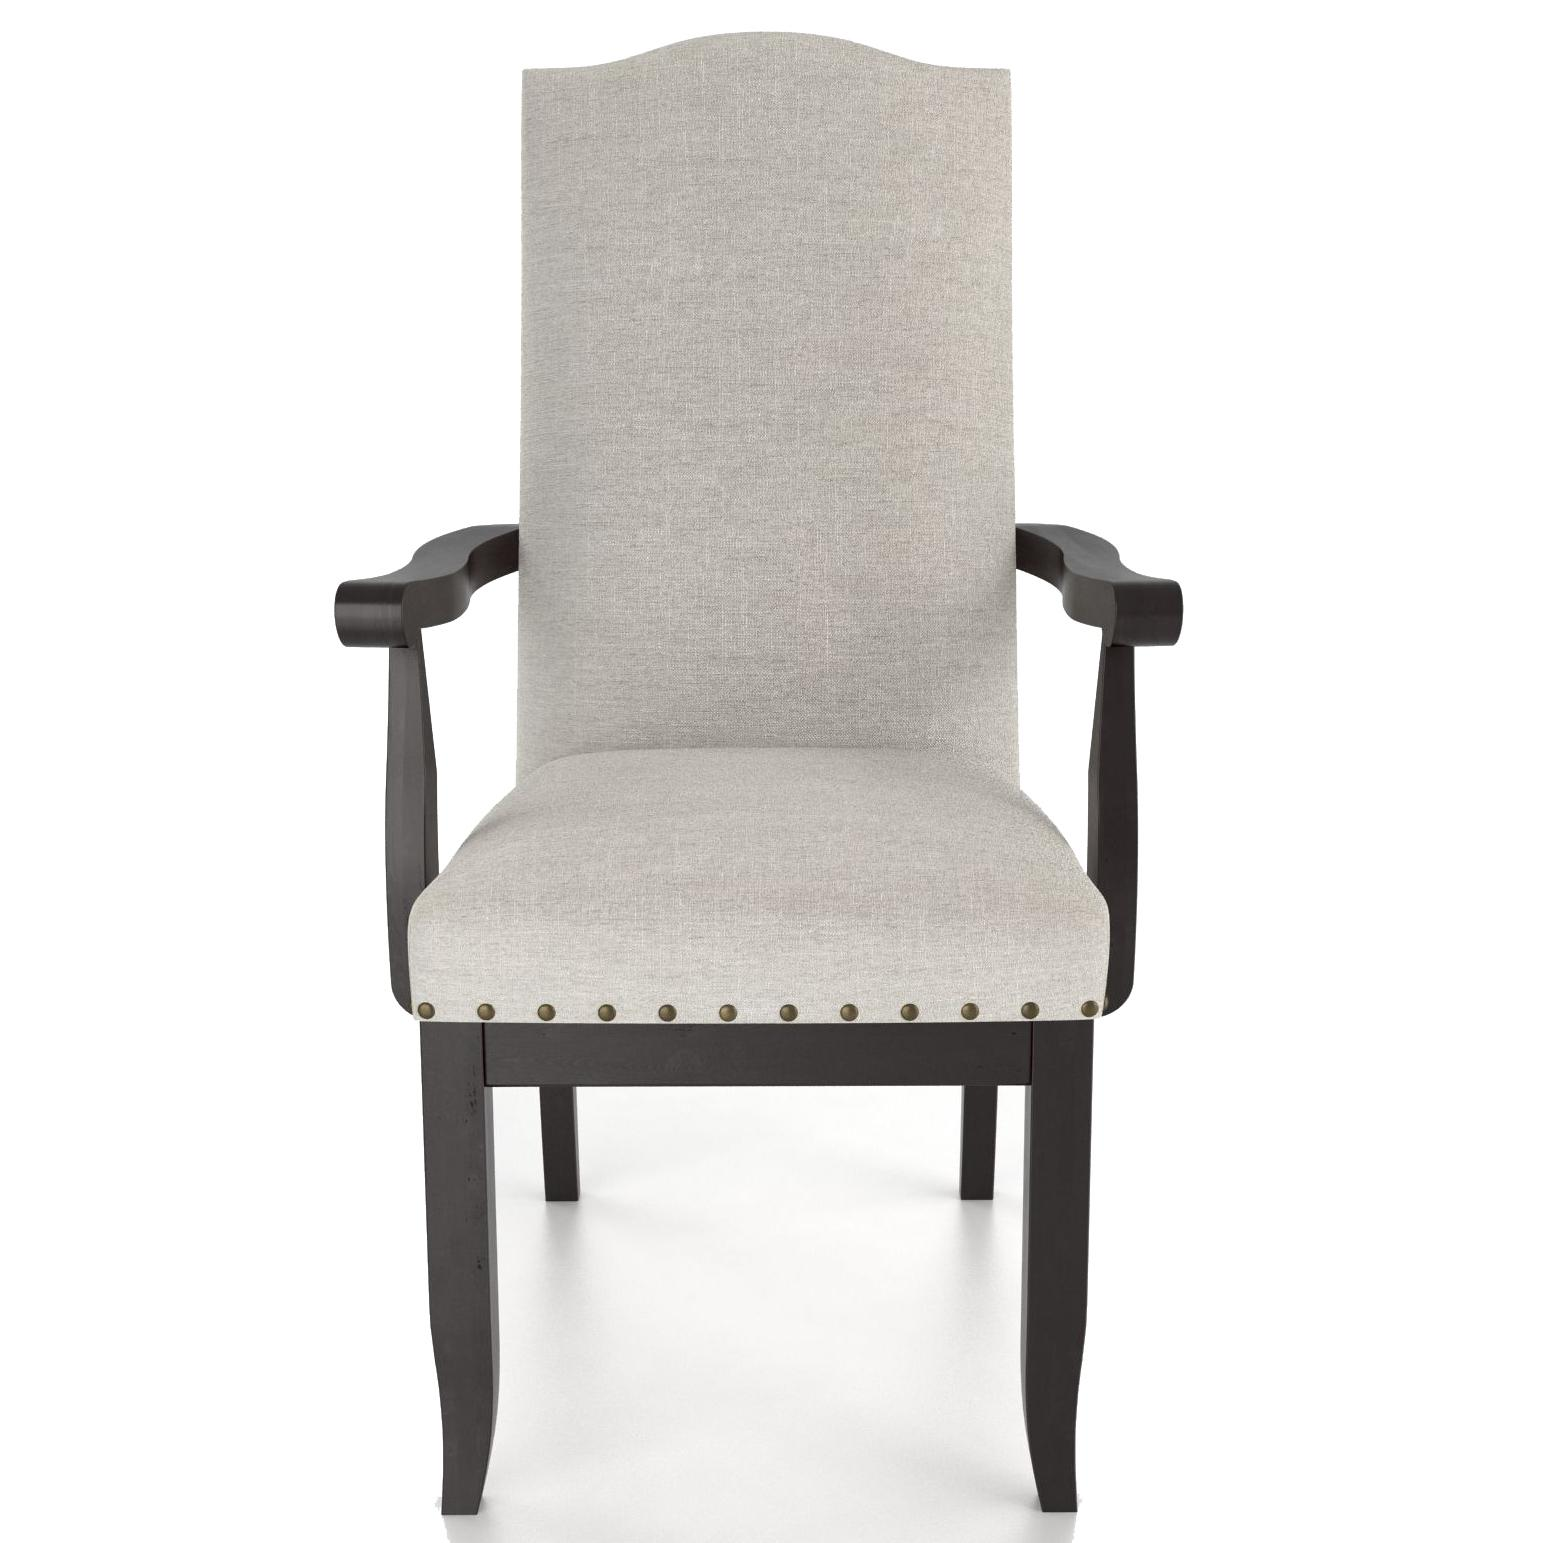 Custom Dining <b>Customizable</b> Upholstered Arm Chair by Canadel at Saugerties Furniture Mart